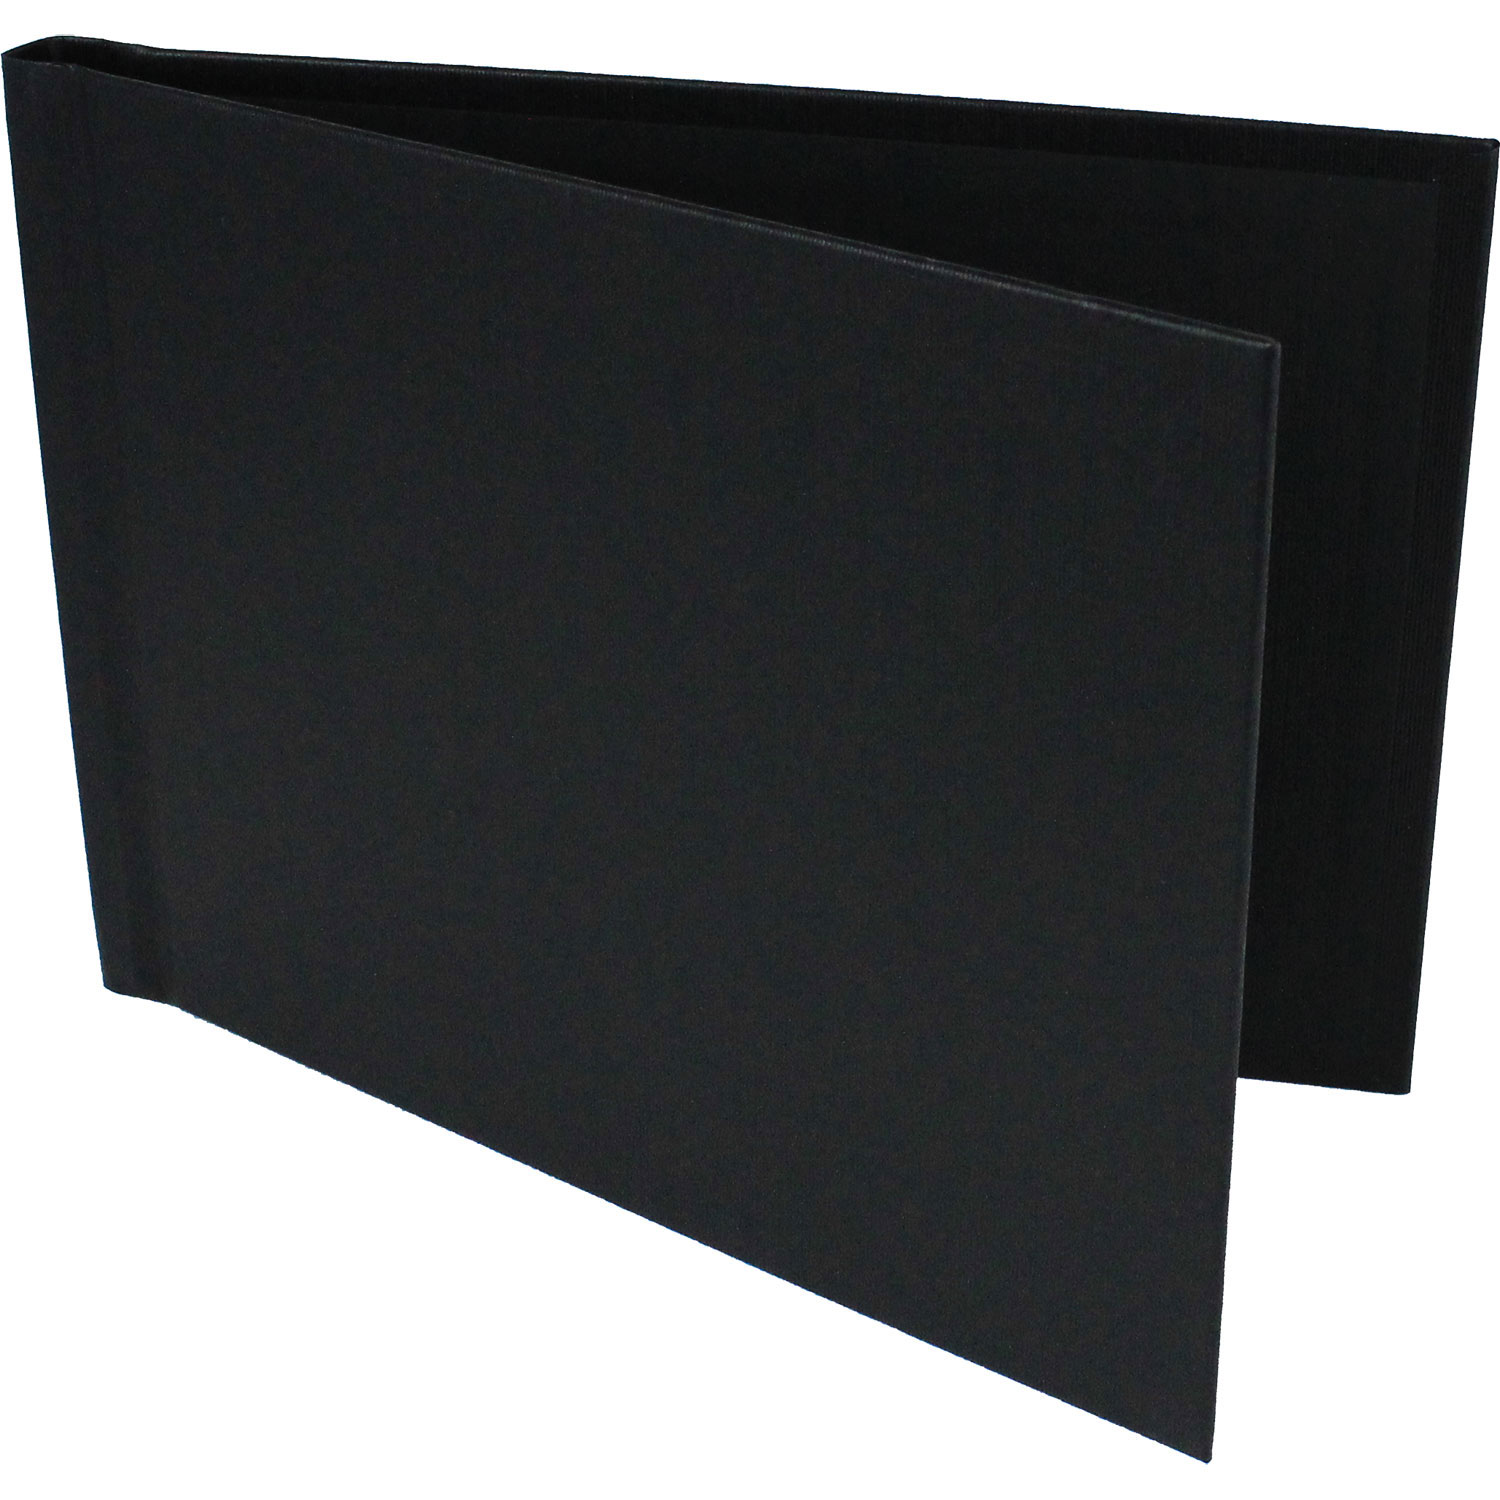 Impressbind A4 Landscape Black Hard Covers 7mm (10)